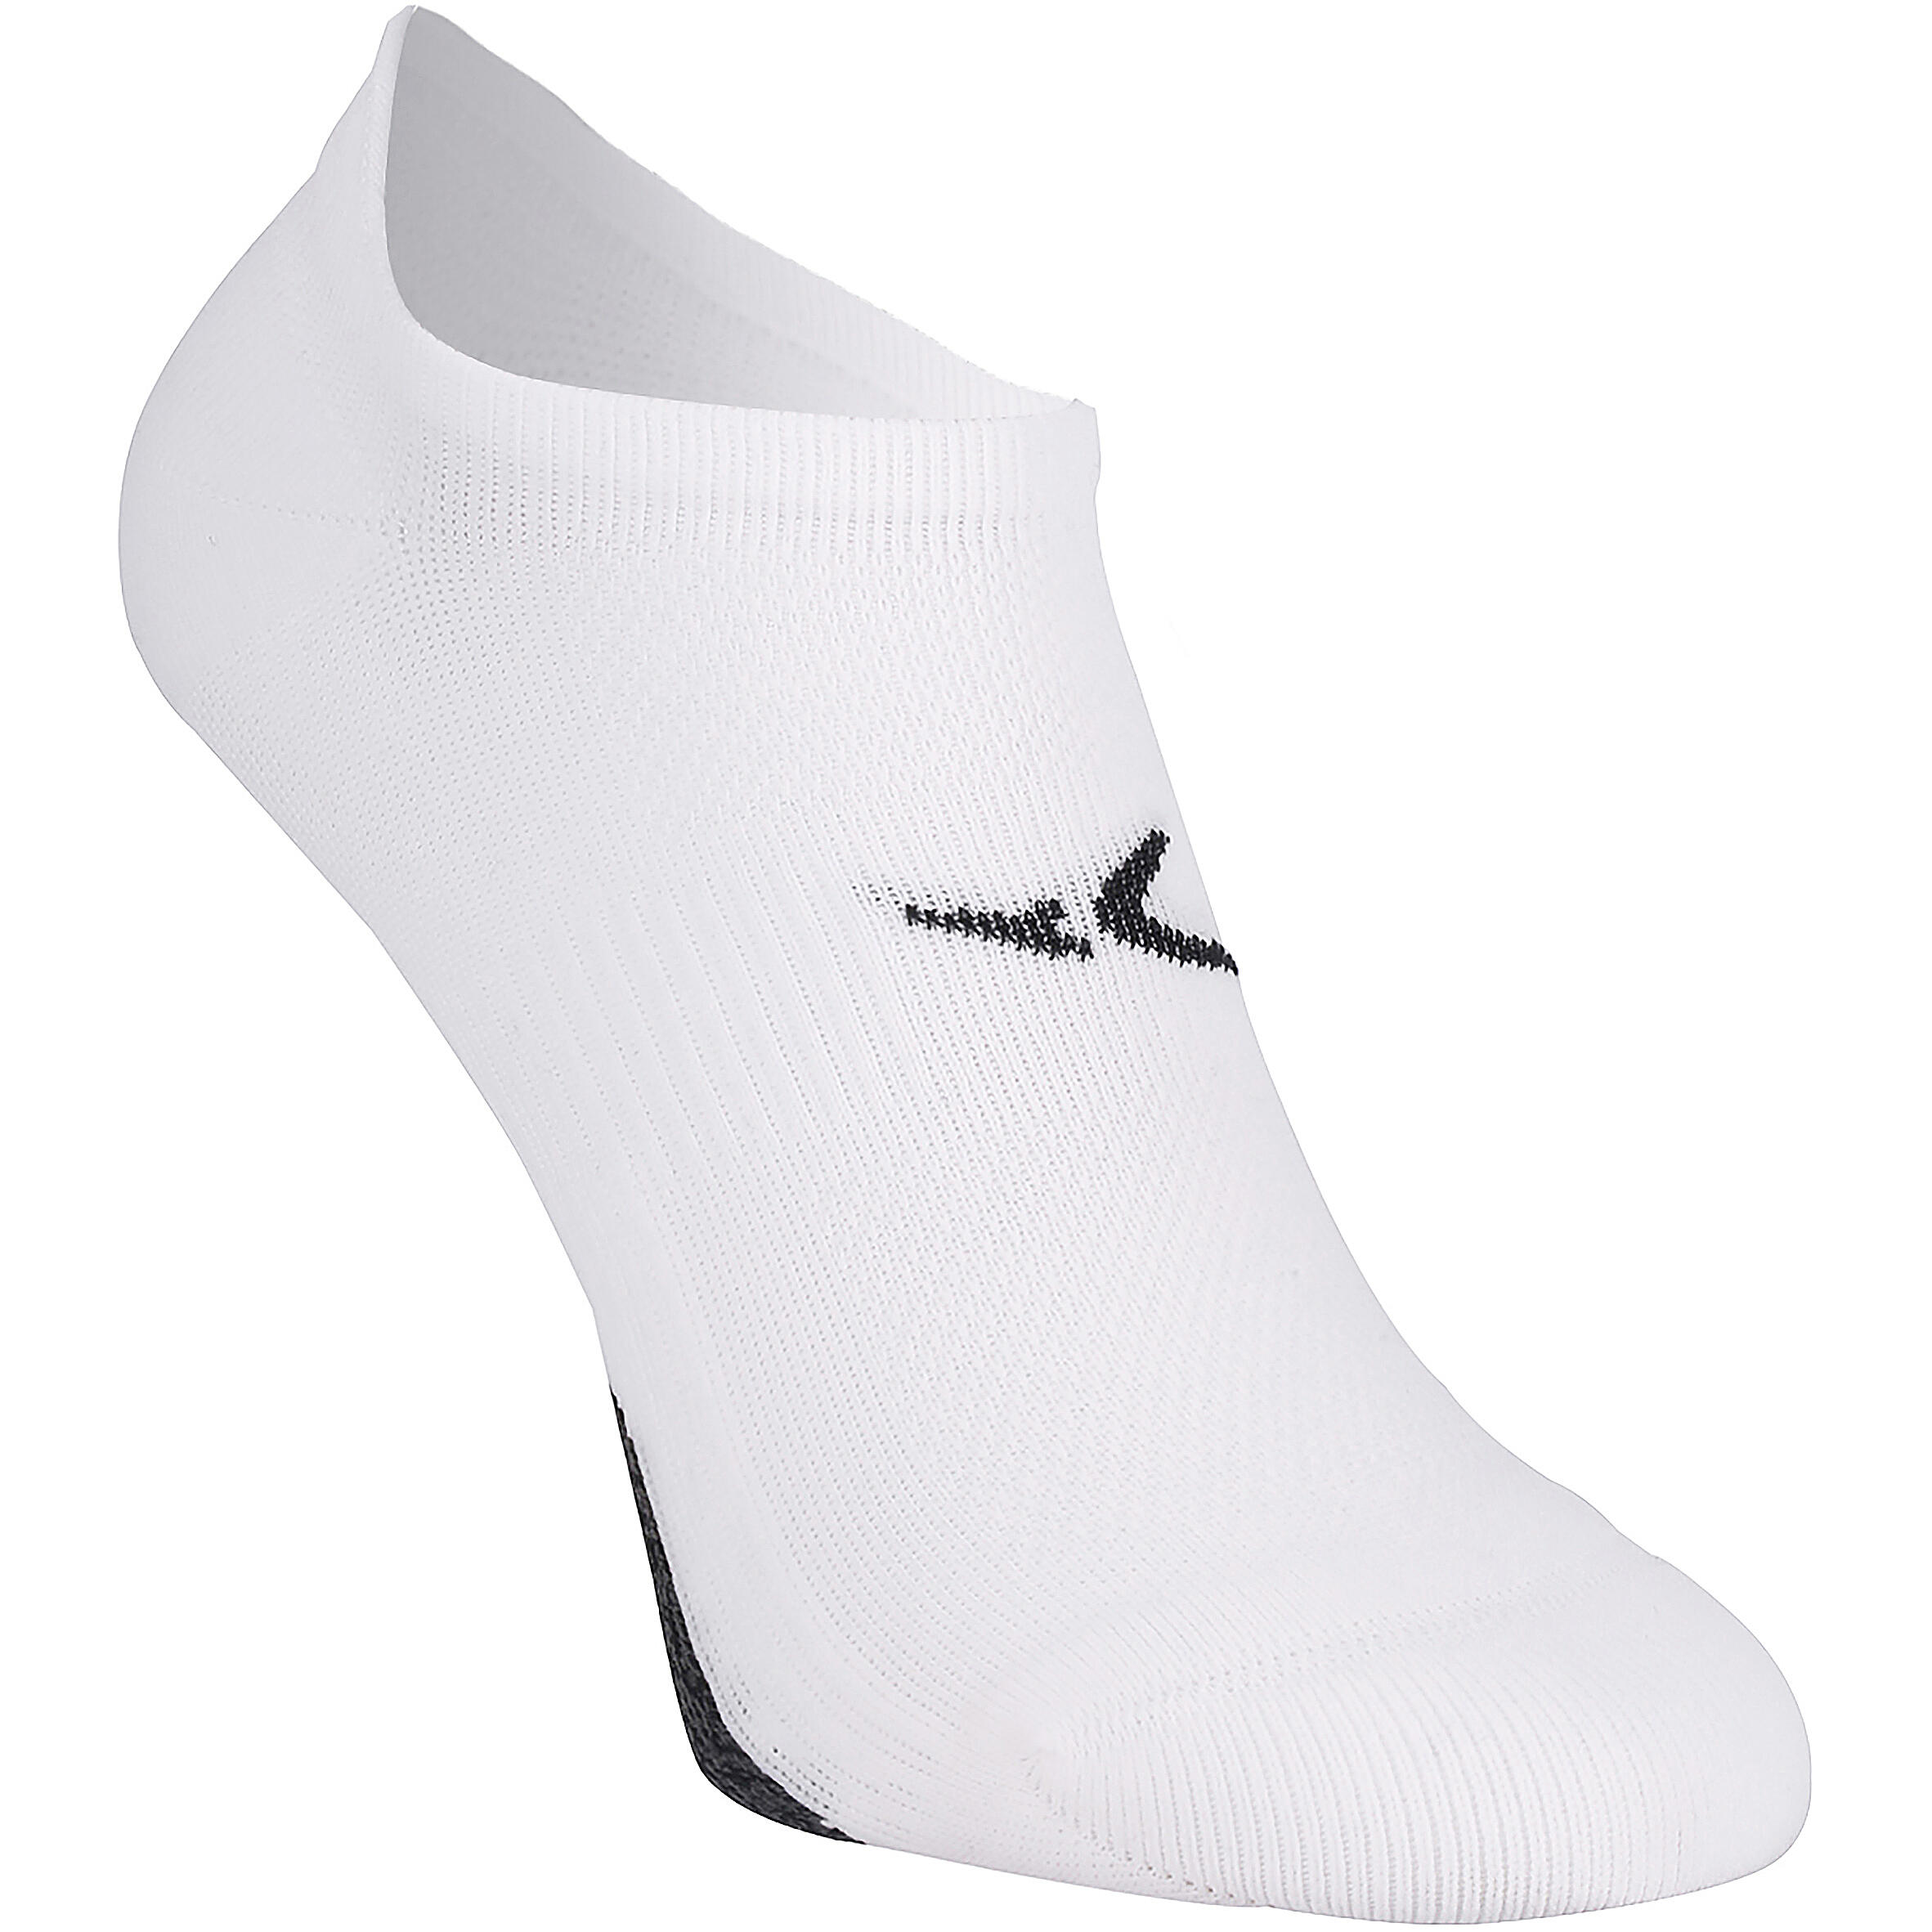 Calcetines invisibles fitness x2 blanco